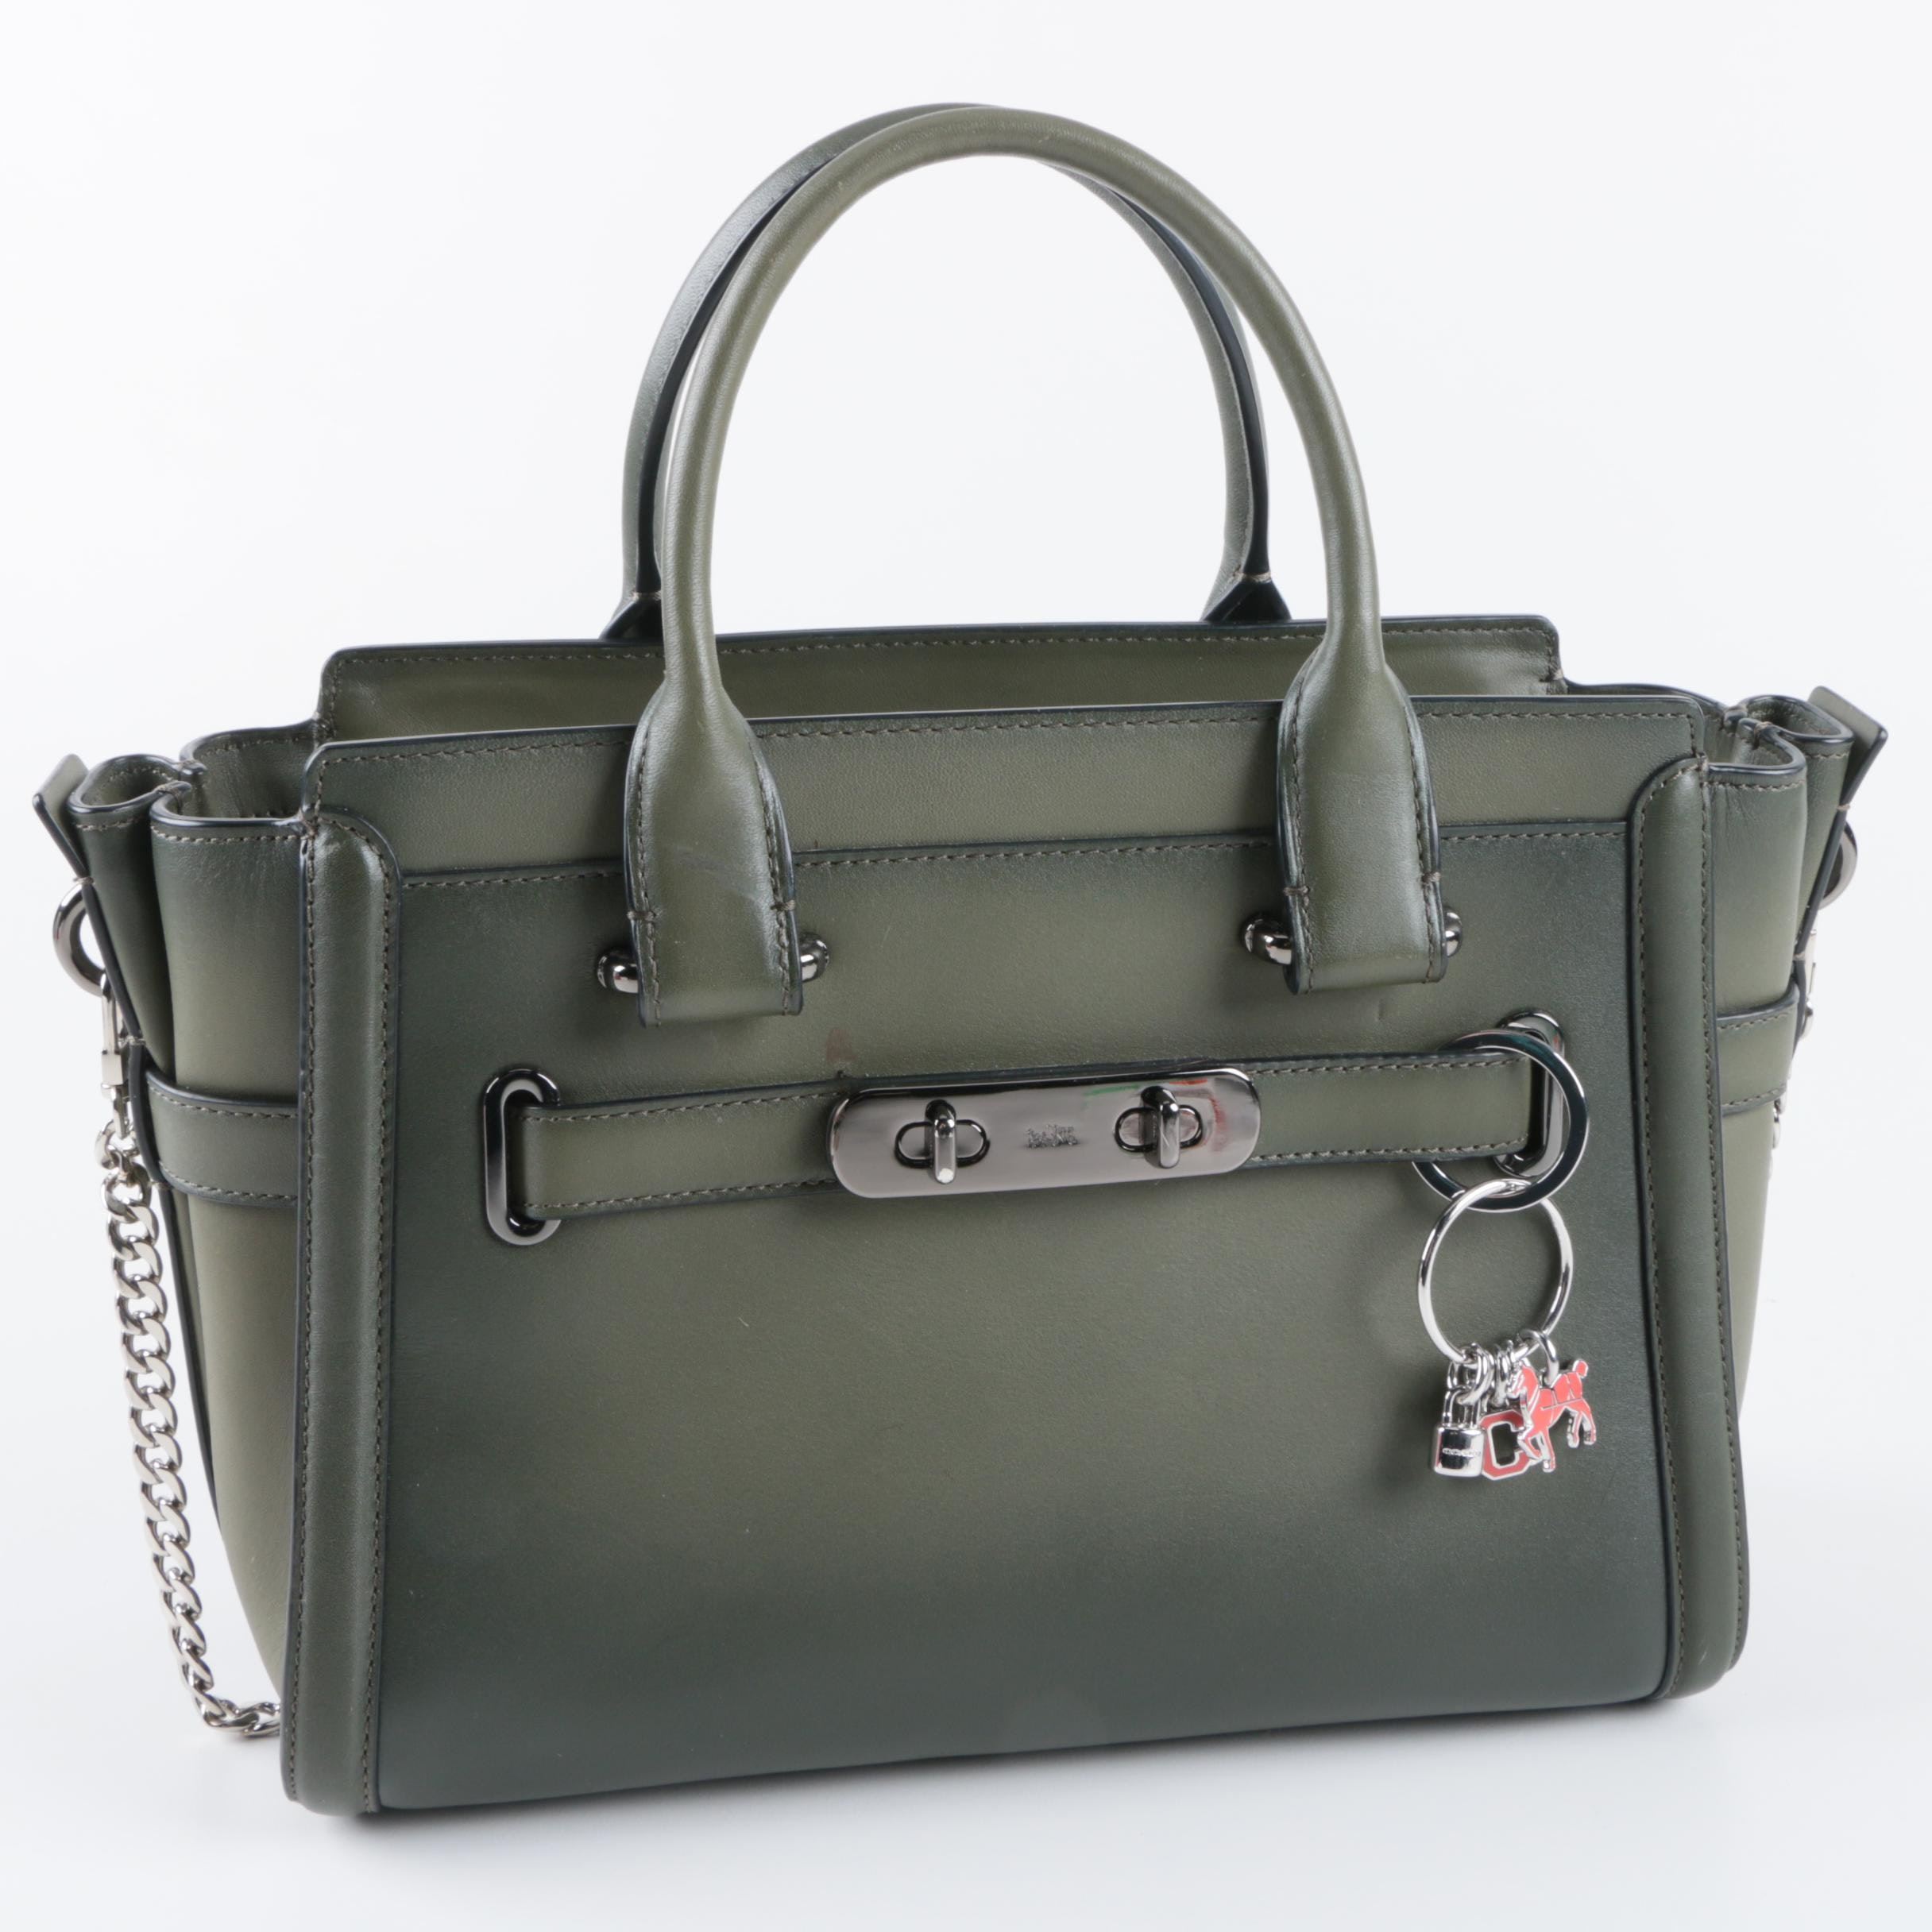 Coach Burnished Green Leather Swagger Satchel